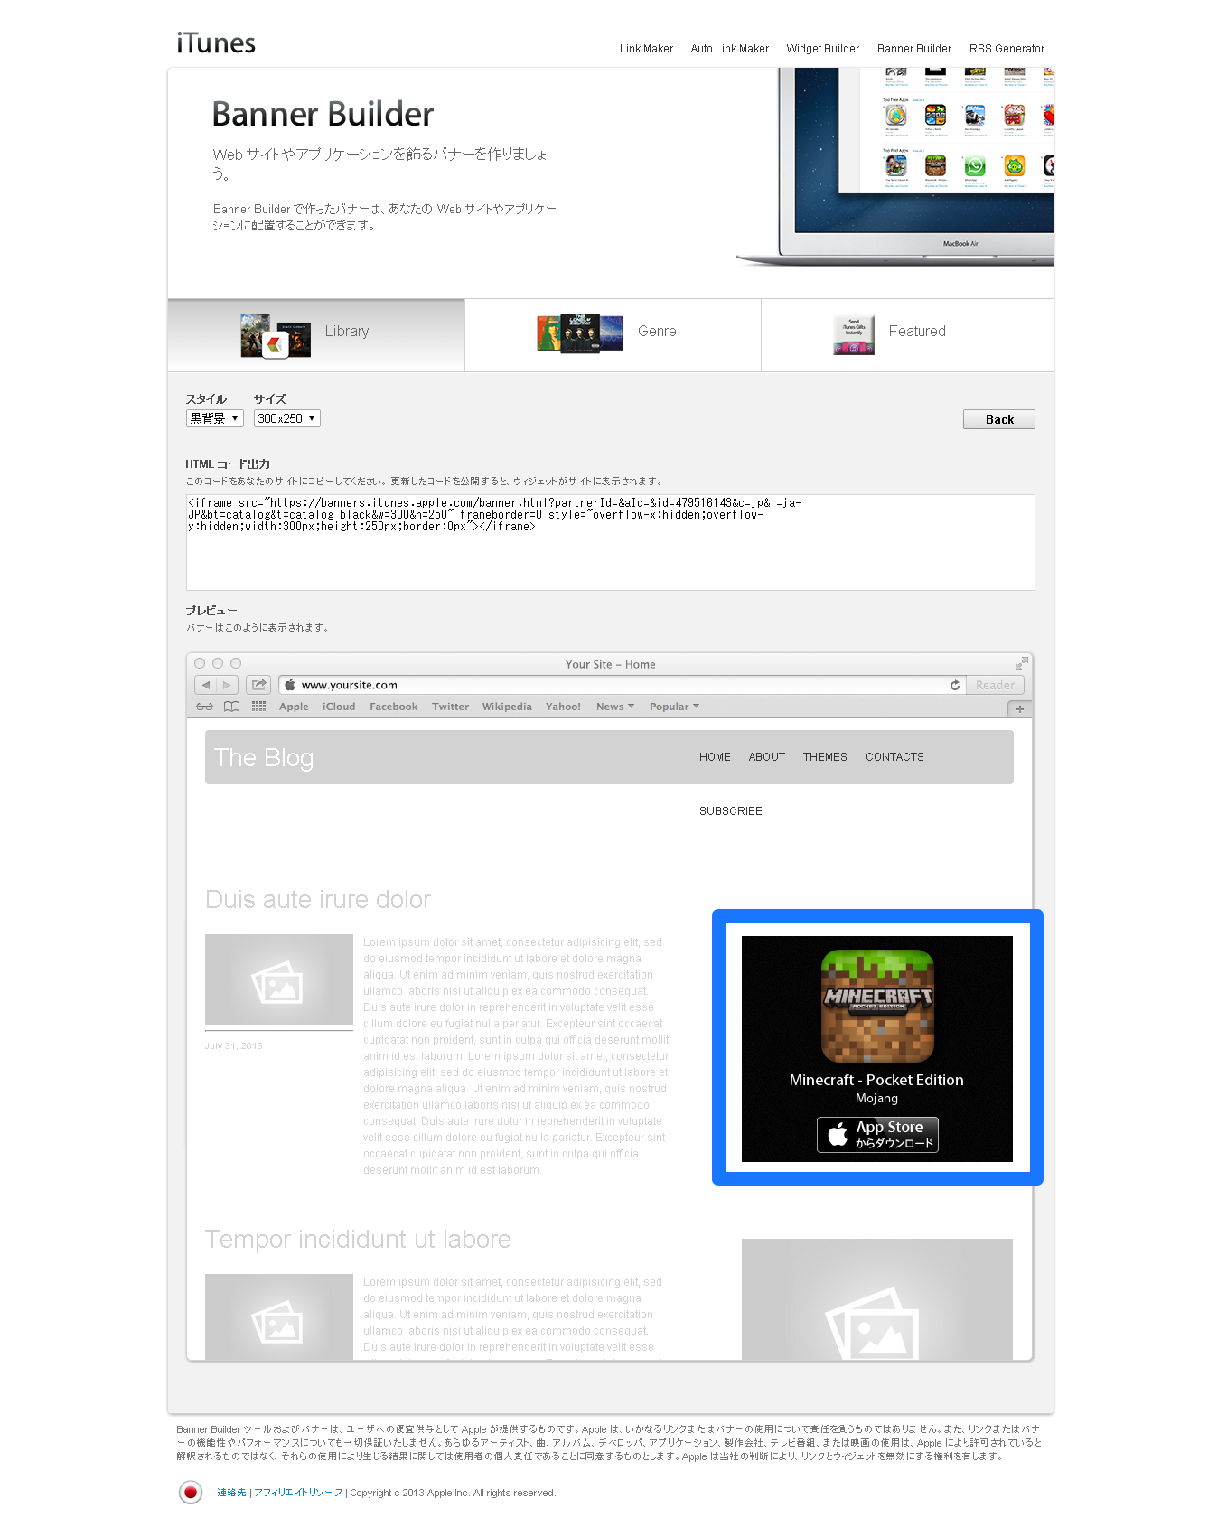 pageshot of 'iTunes Banner Builder' @ 2014-02-01-0833